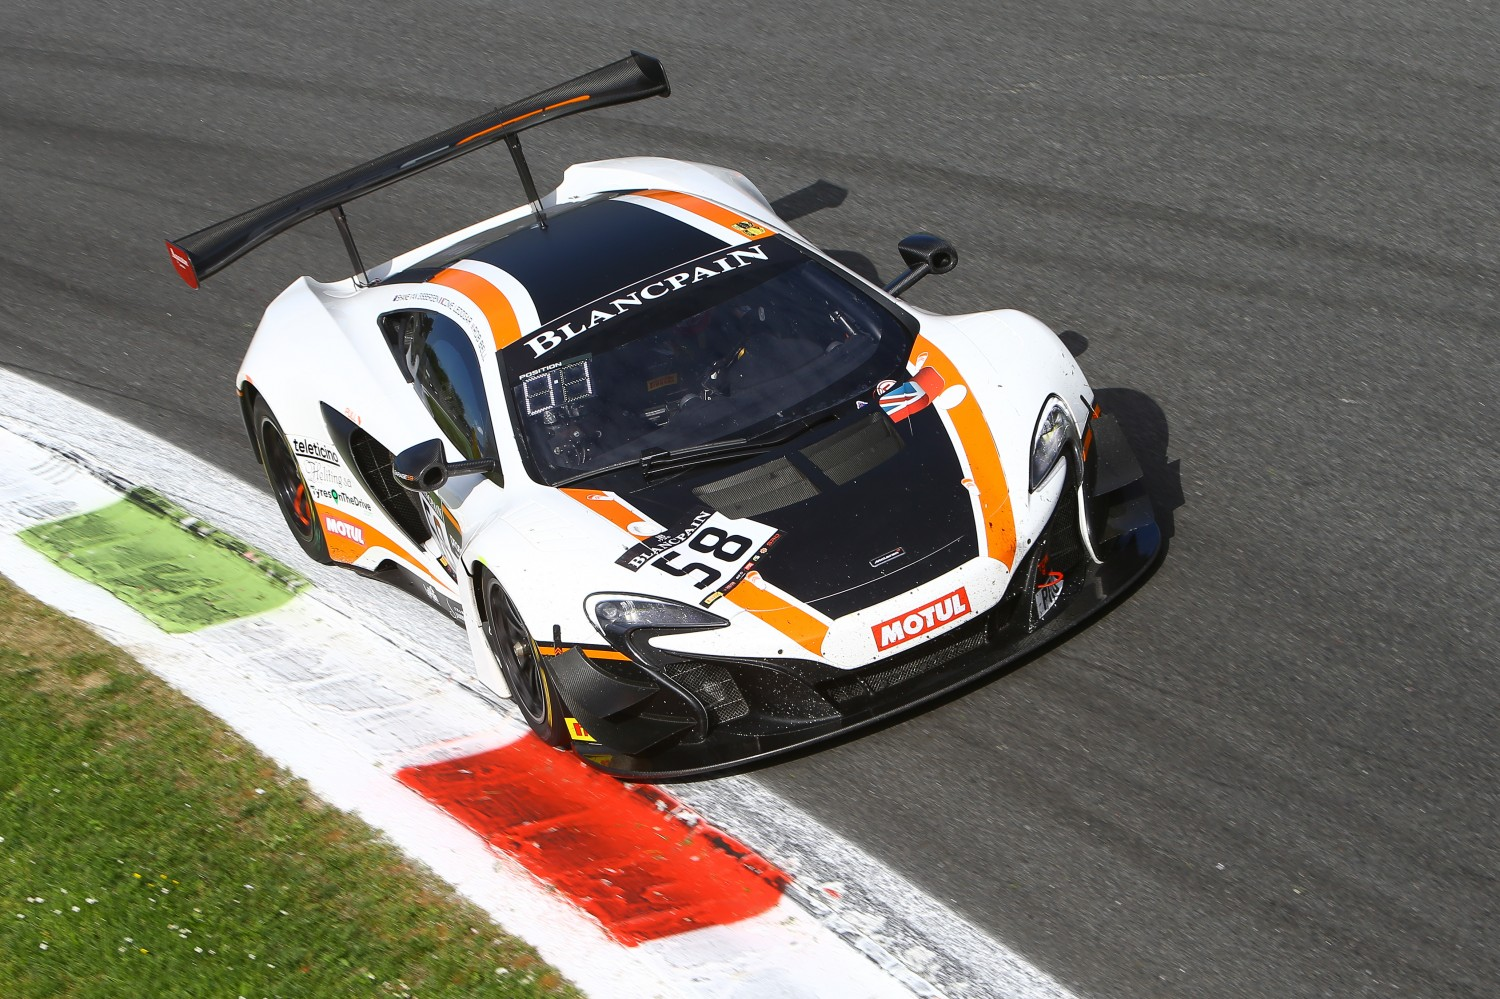 Garage 59 McLaren takes win after nail-biting finish